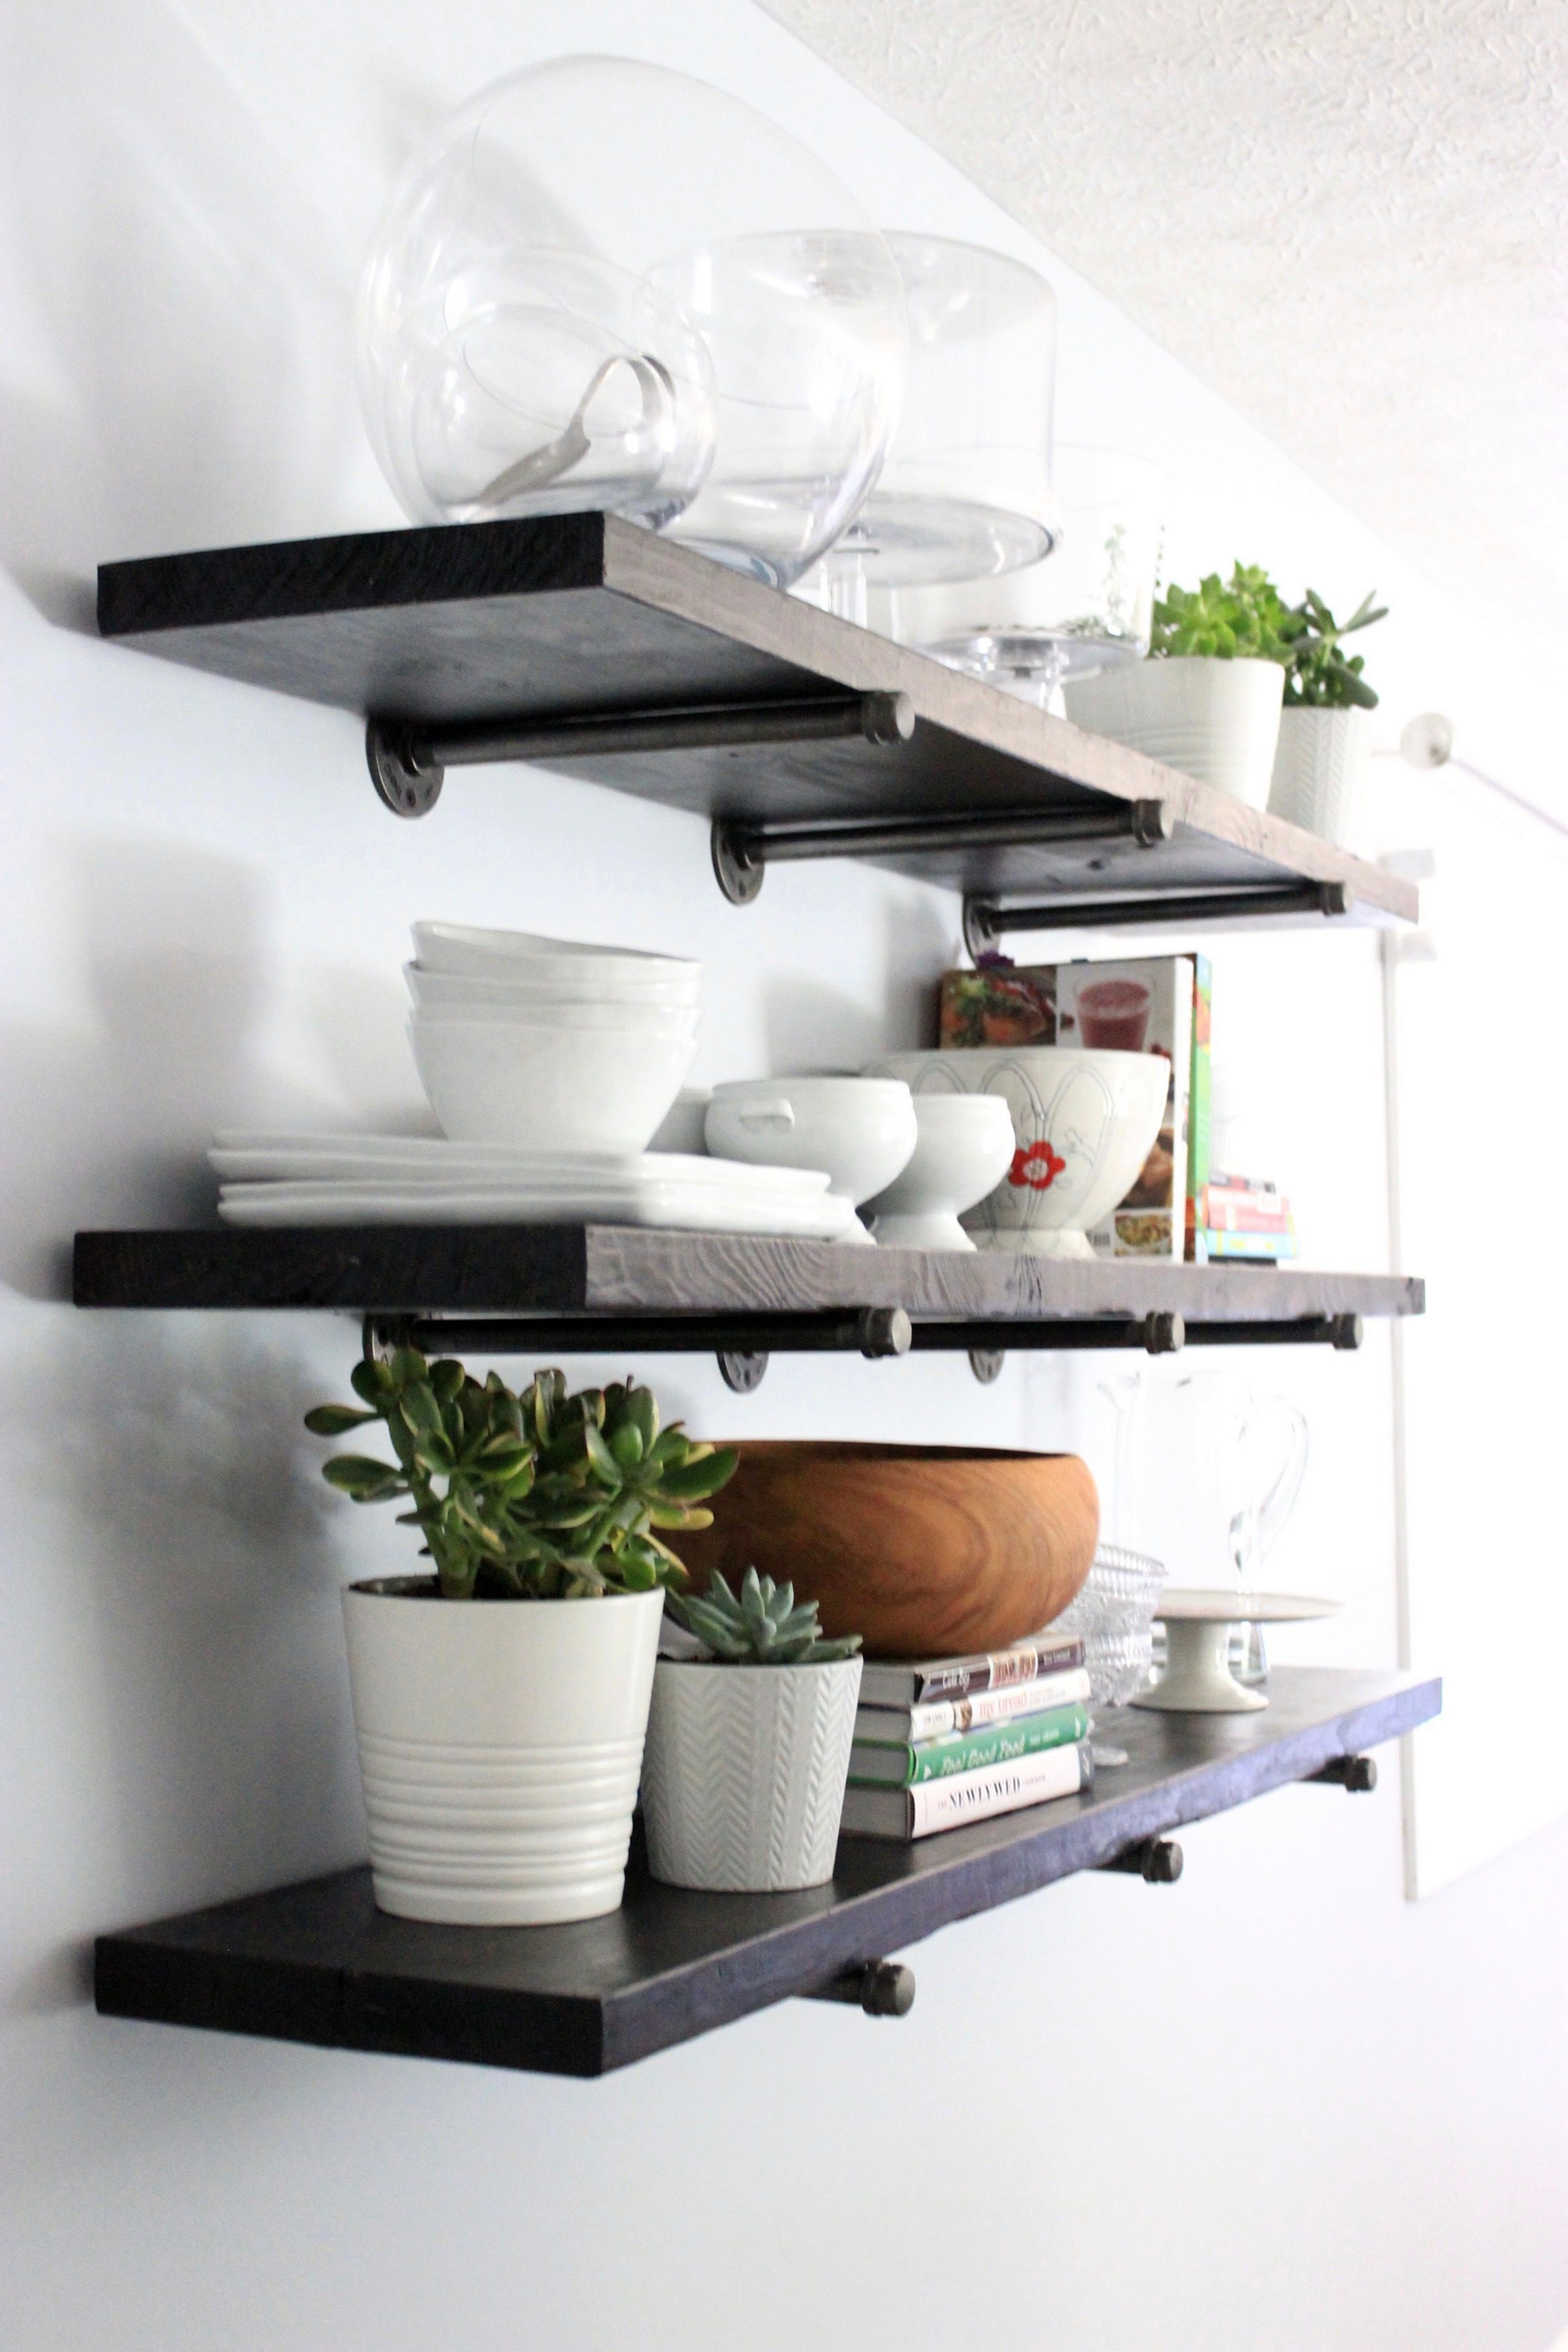 Pin On Diy Project And Decor Ideas